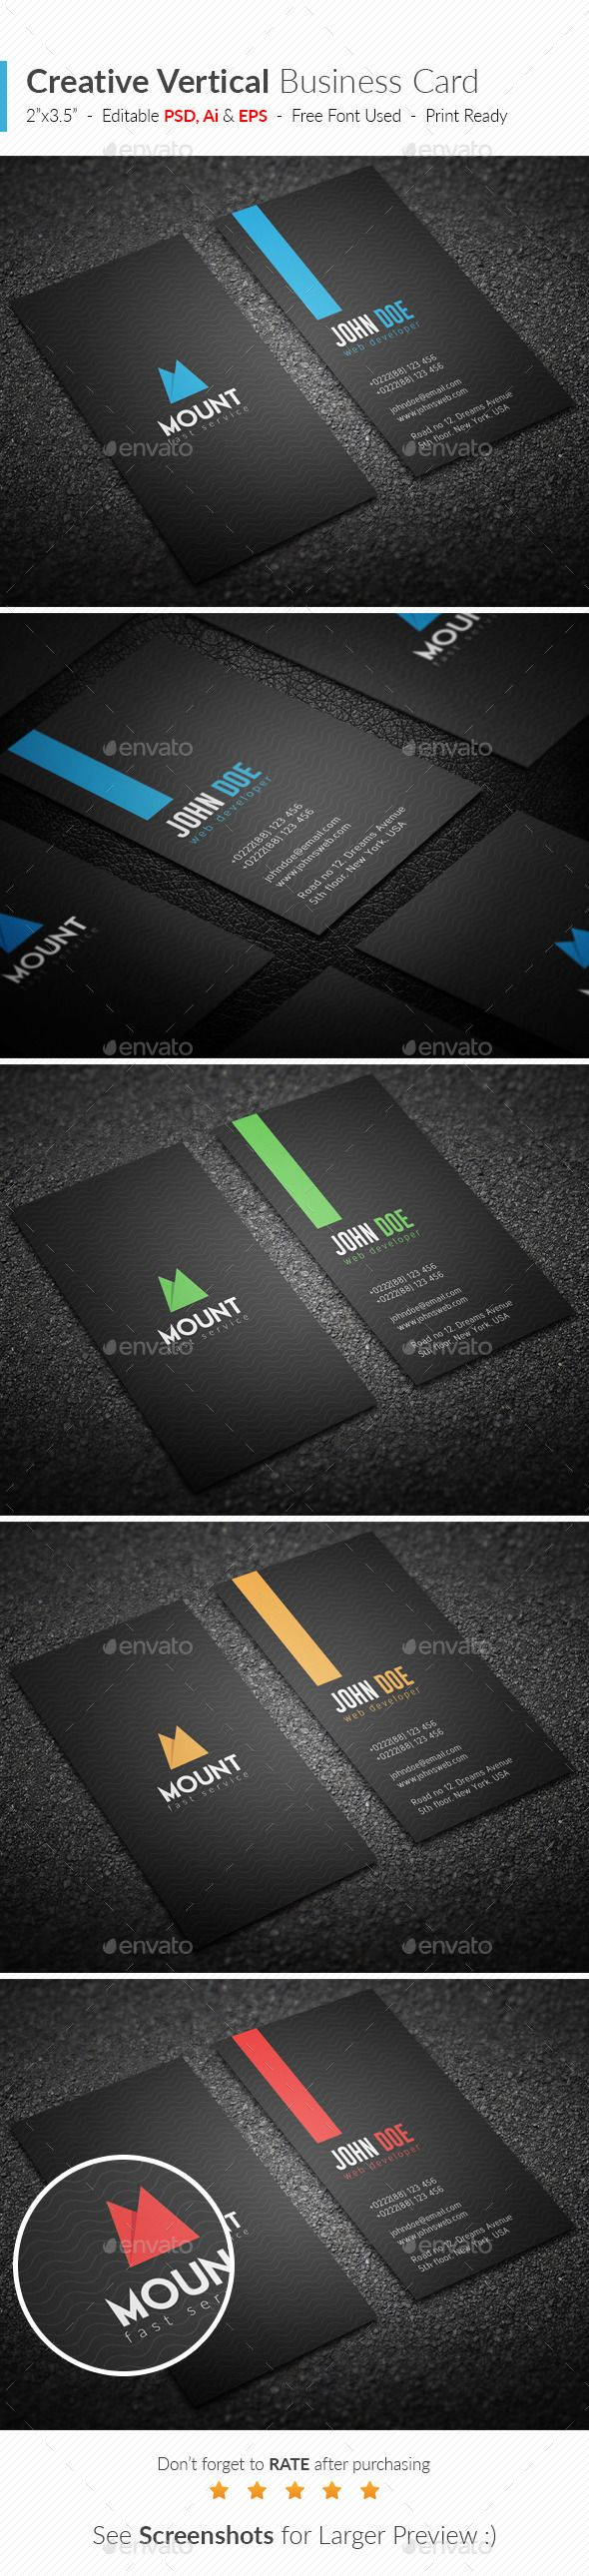 Creative Vertical Business Card Template #design #visitenkarte Download: http://graphicriver.net/item/creative-vertical-business-card/12275983?ref=ksioks